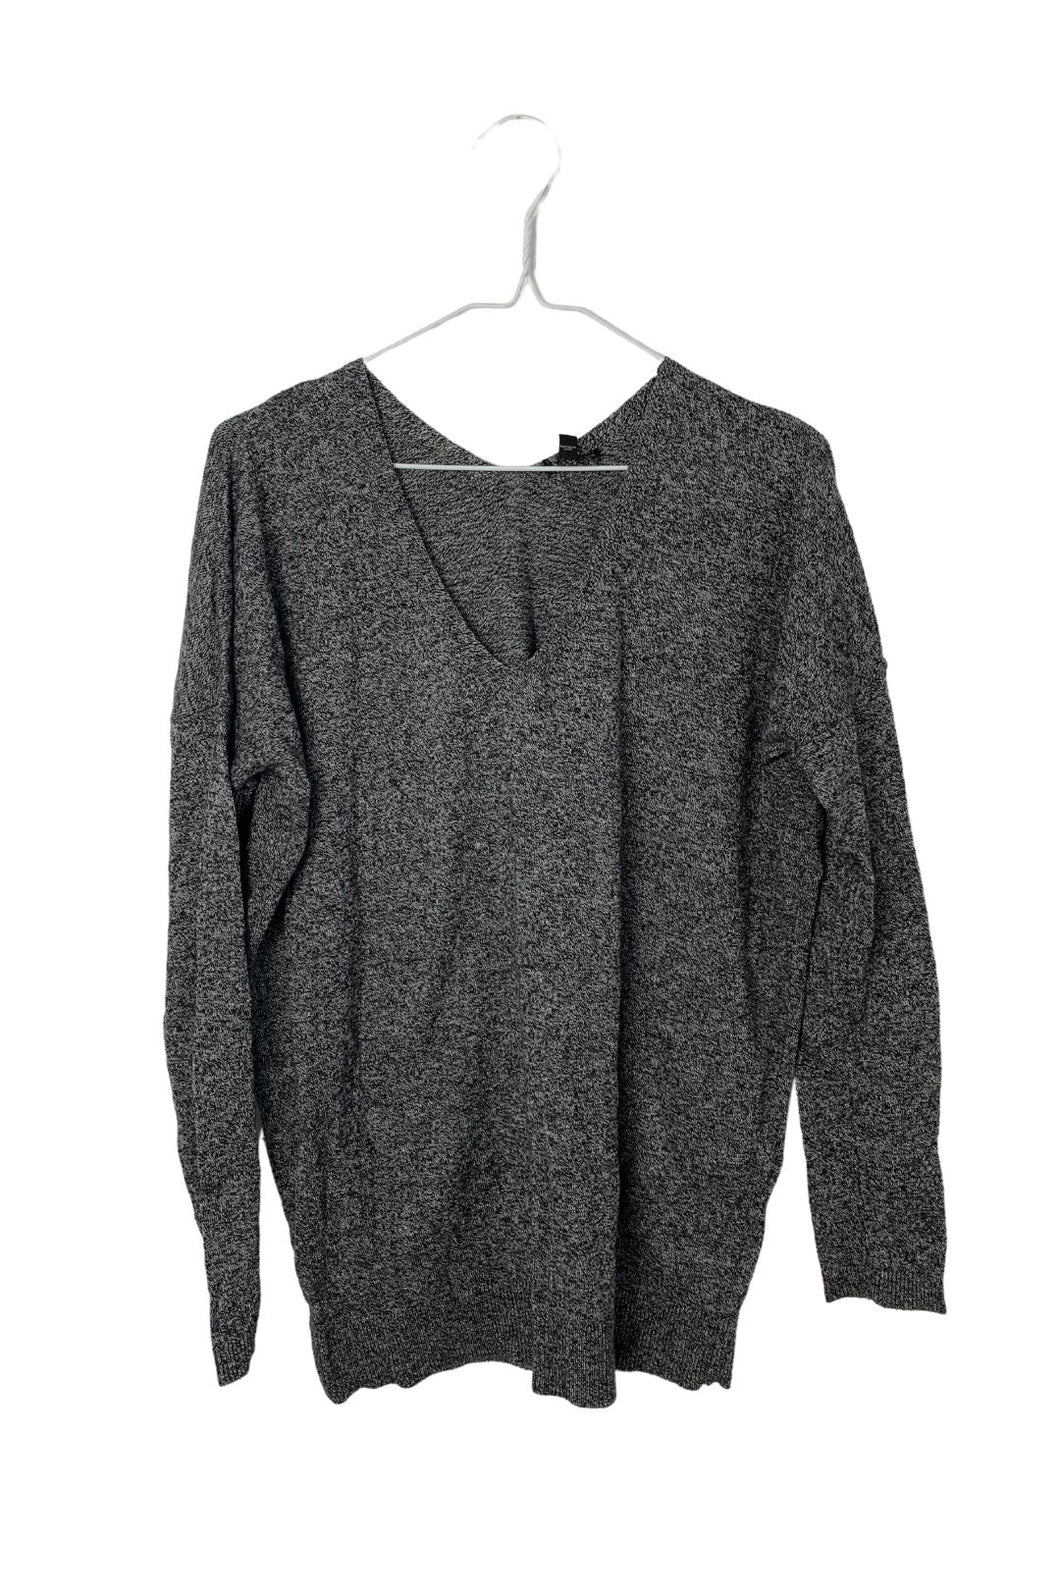 (L) EXPRESS SWEATER